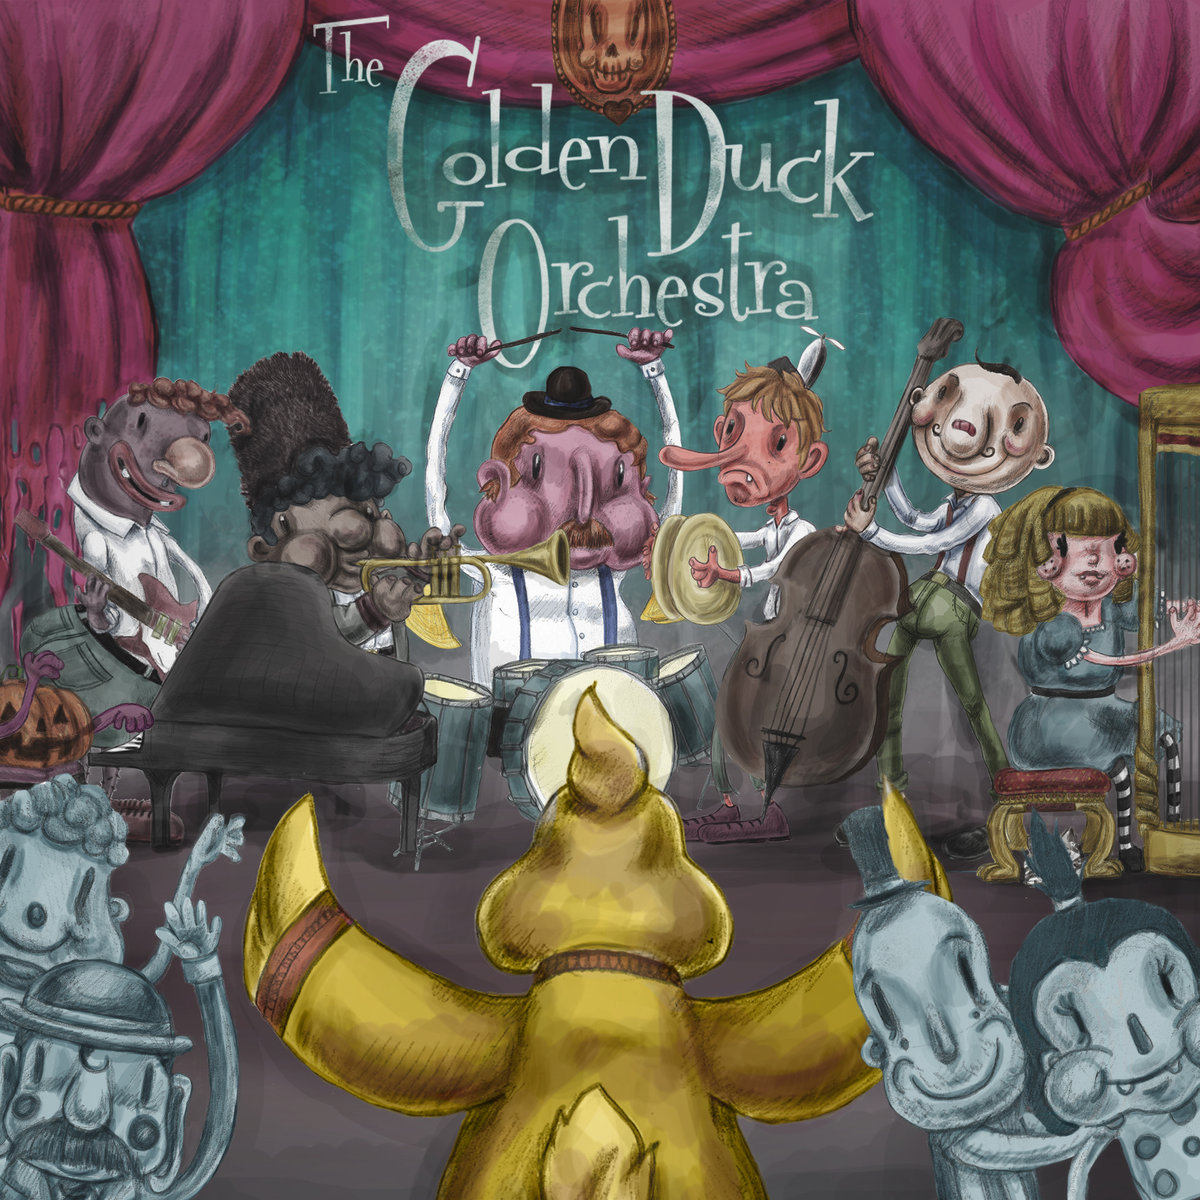 Golden Duck Orchestra - Alien @ 'Golden Duck Orchestra' album (alternative, brazilian music)